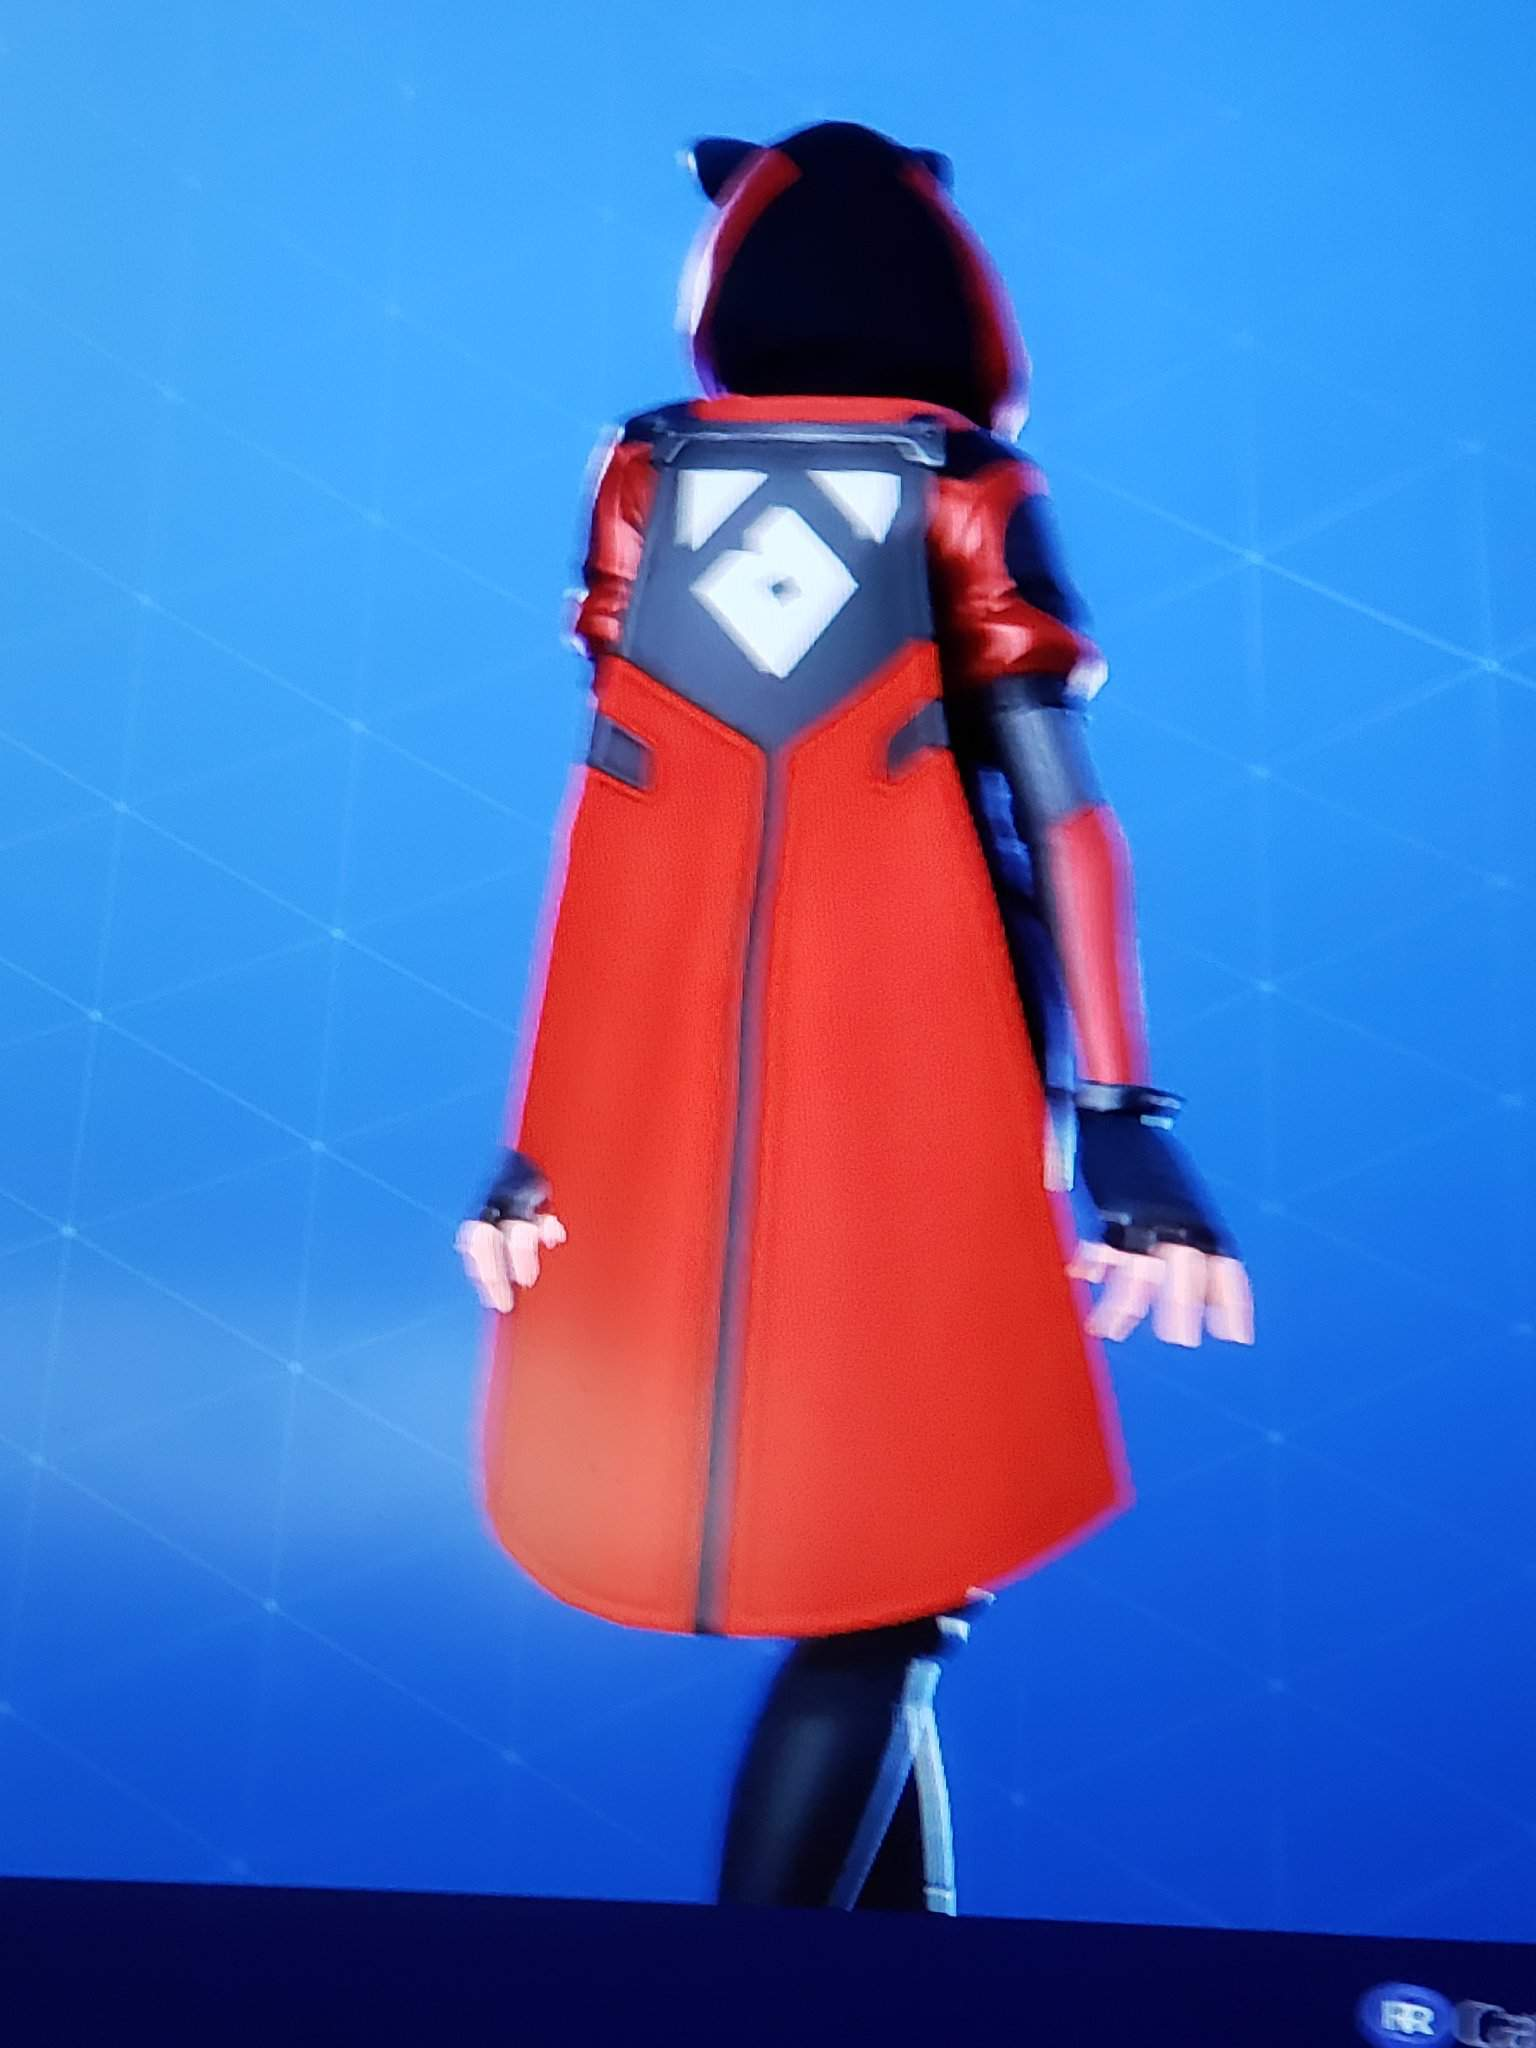 Fortnite Cape roblox cape | fortnite: battle royale armory amino